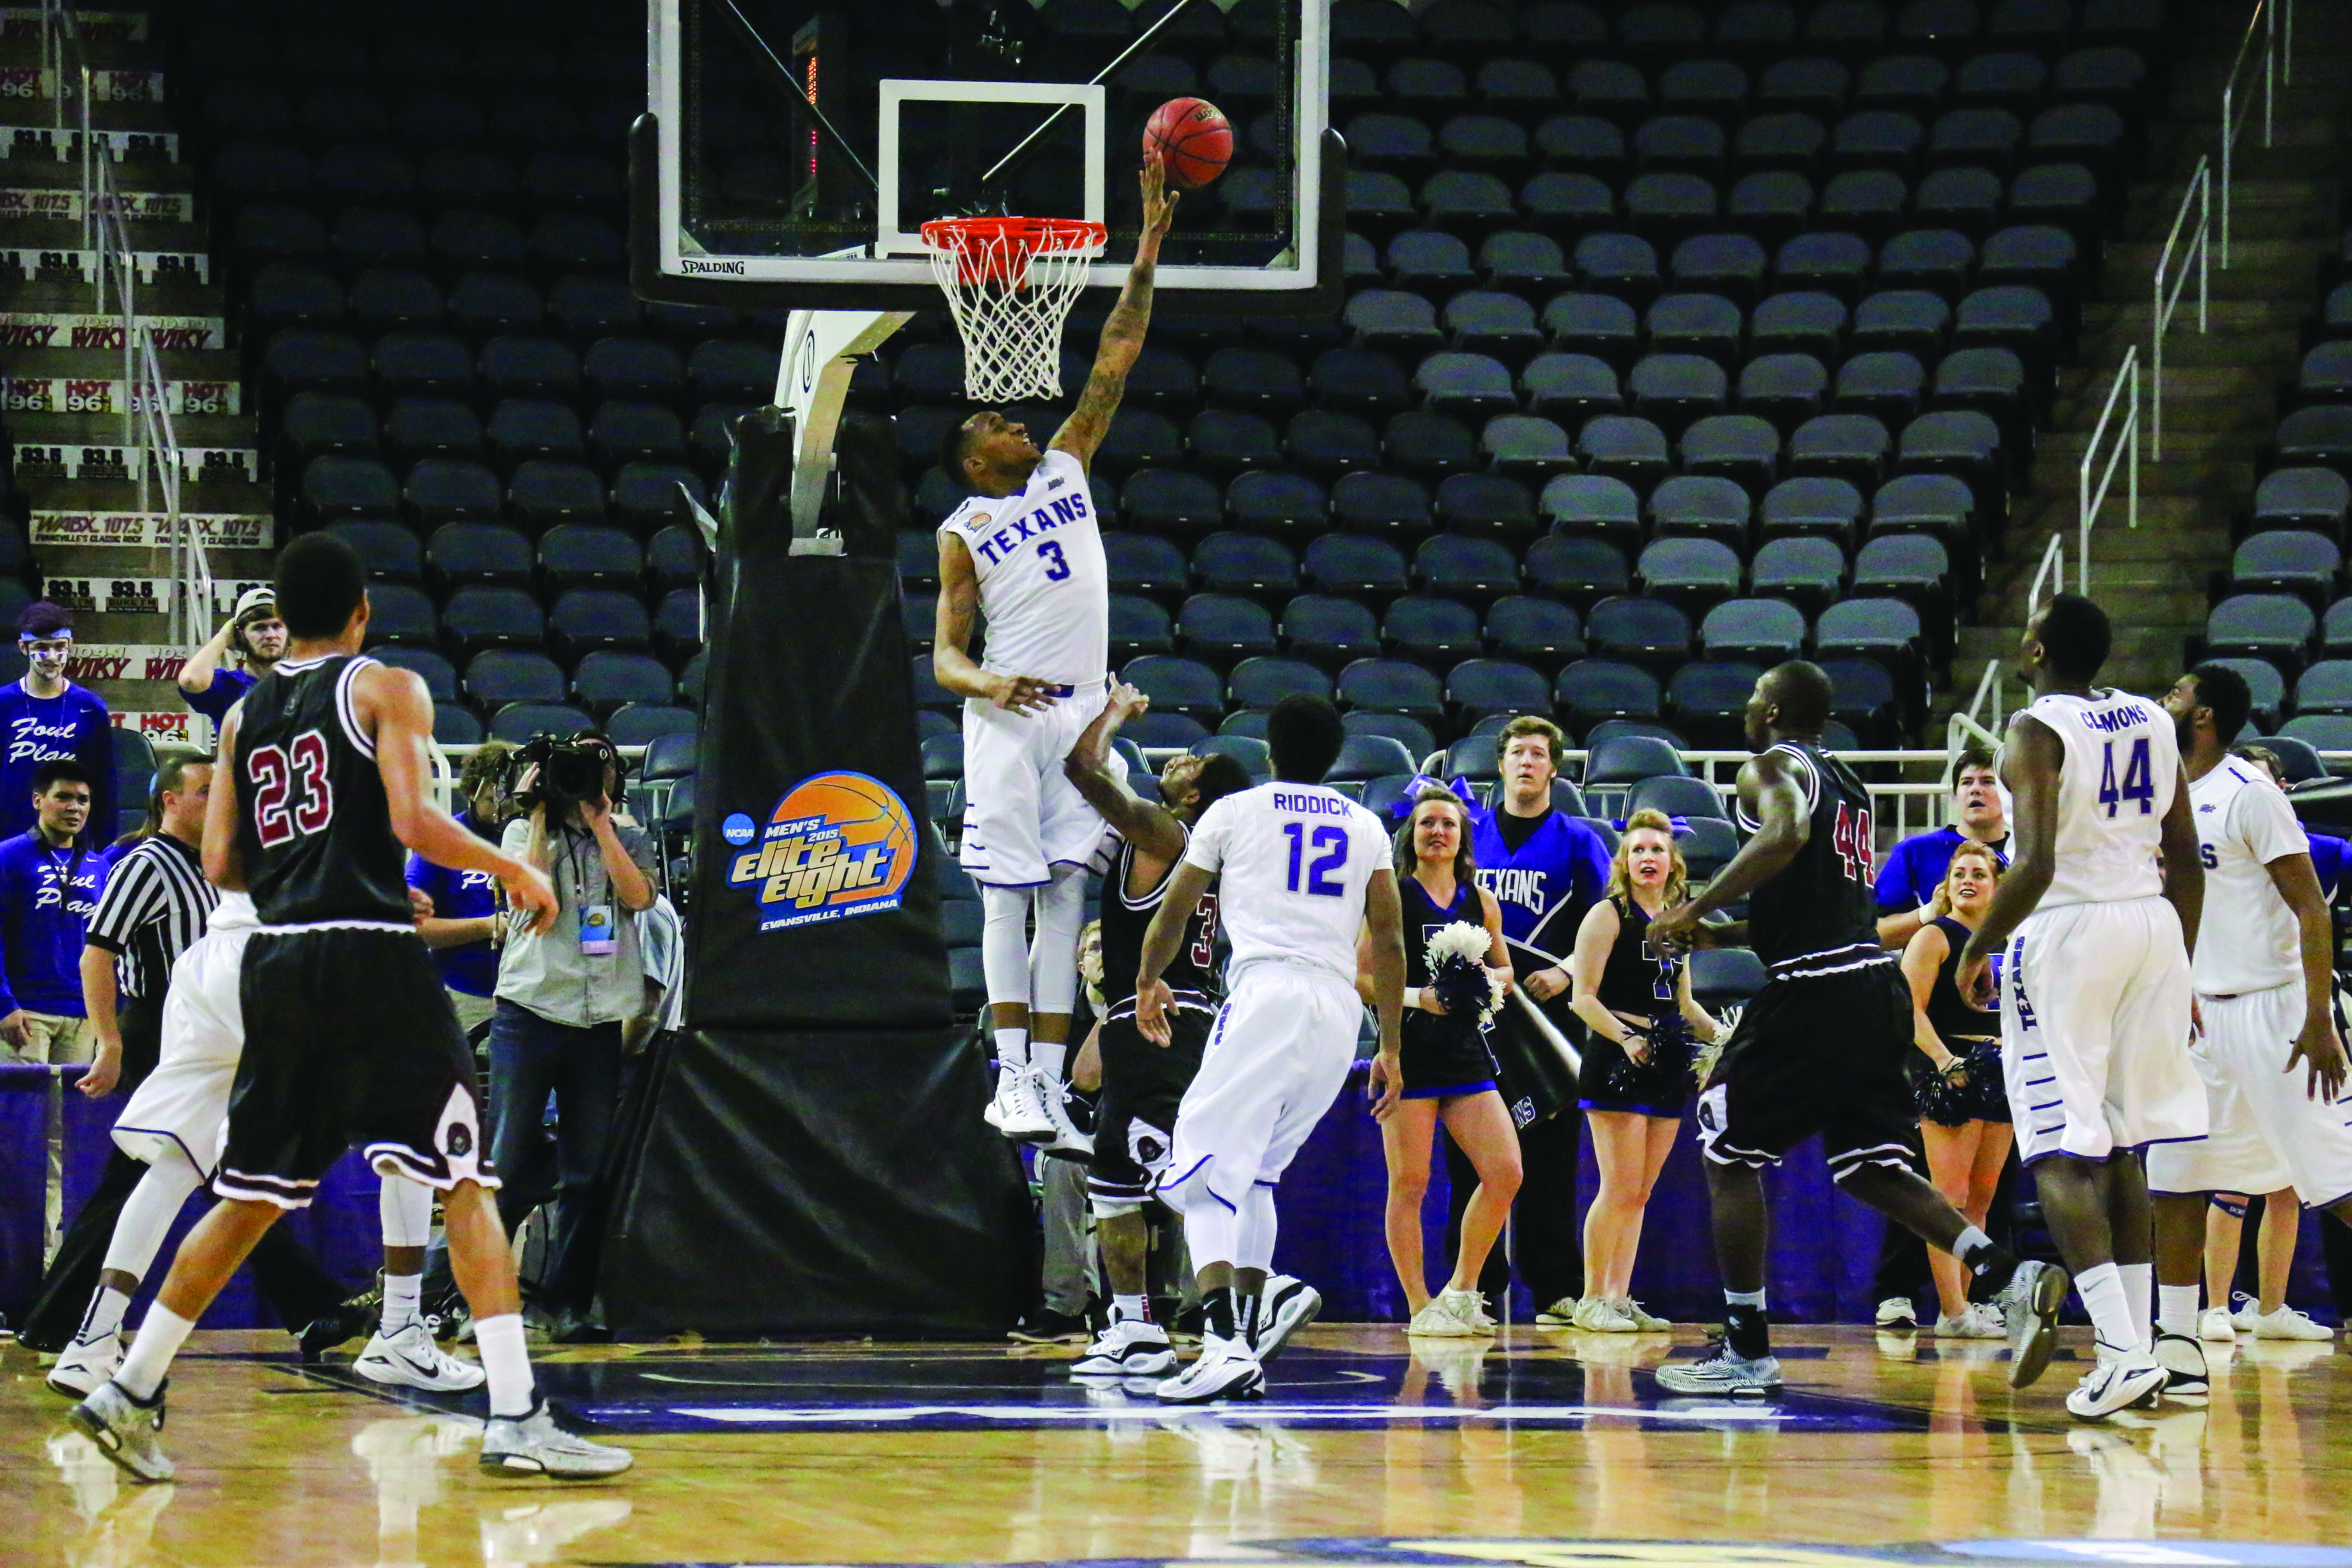 EJ Reed blocks the shot against the University of Mount Olive at the 2015 NCAA Division II Elite 8.(Photo by Cameron Cook, Texan News Service)